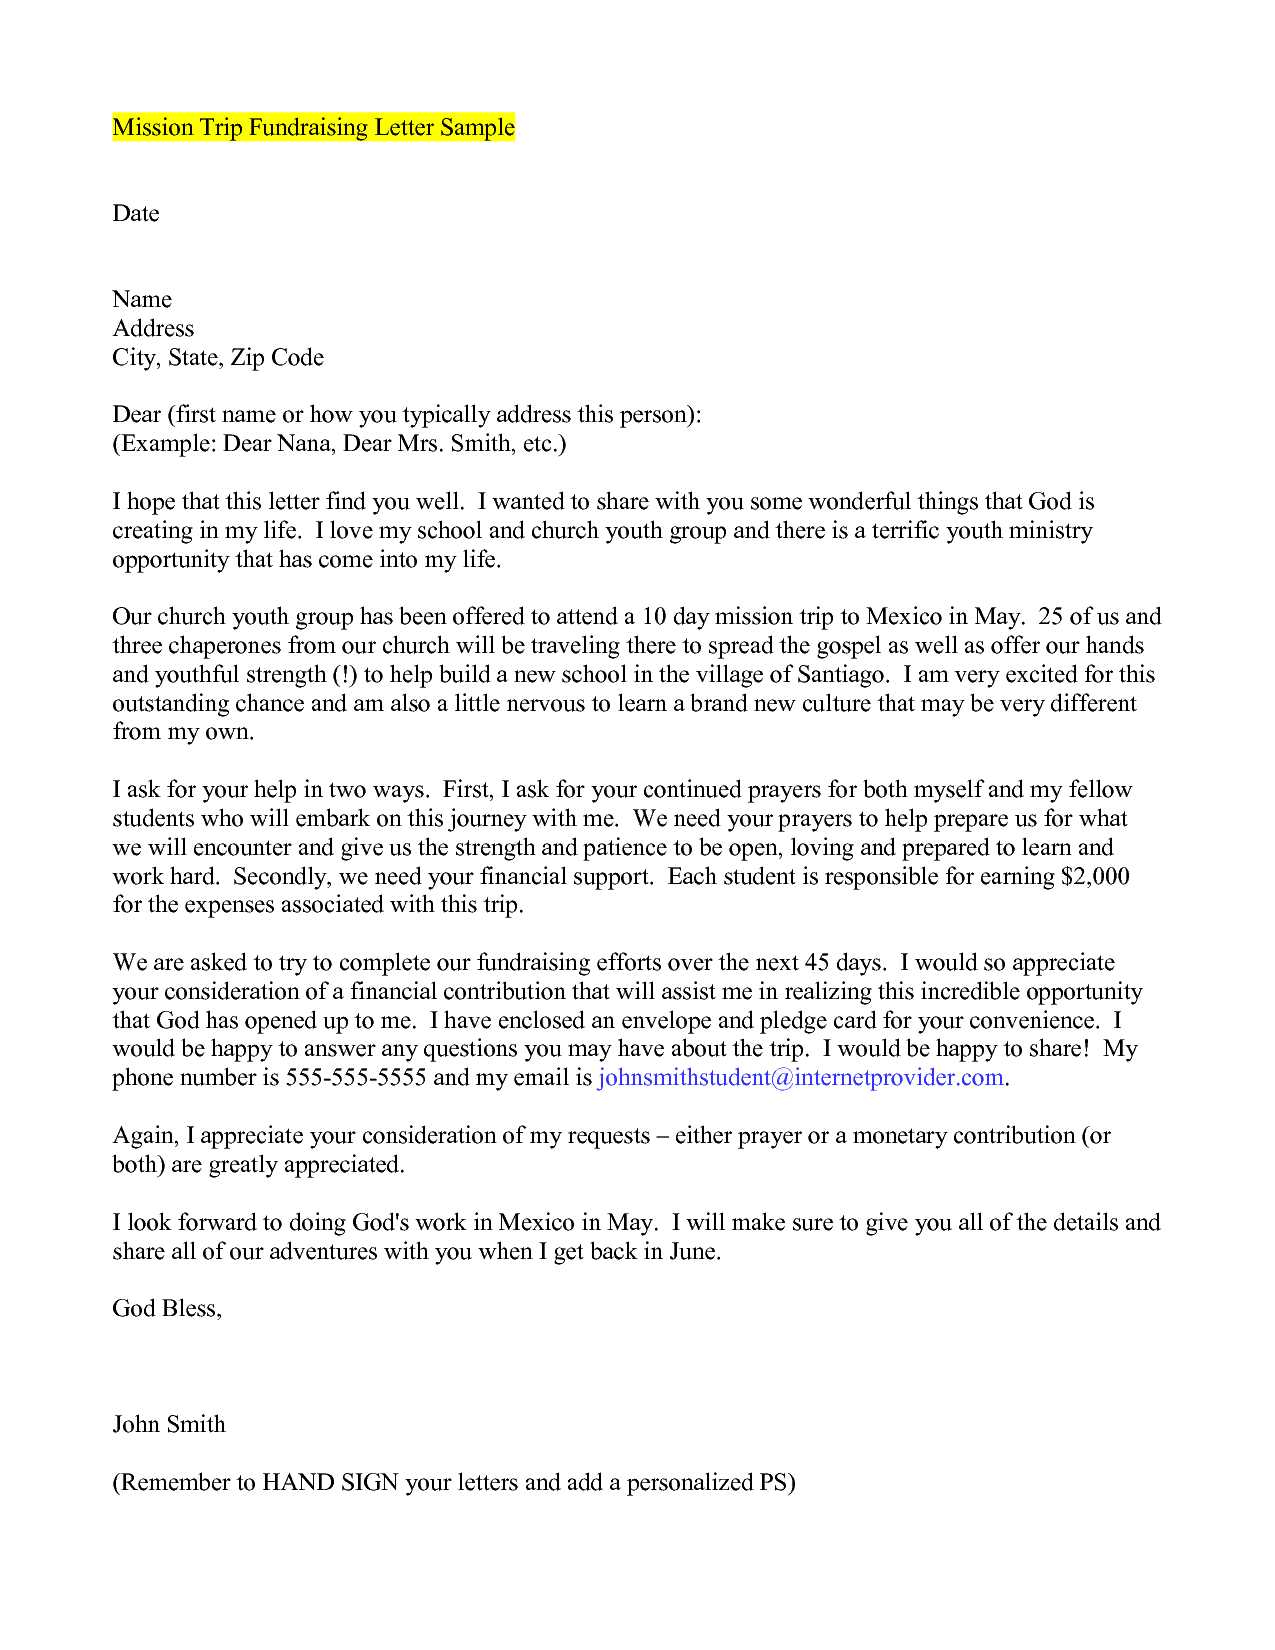 Mission Trip Letter Template - Early Childhood Philosophy Statement Examples as Well as Mission